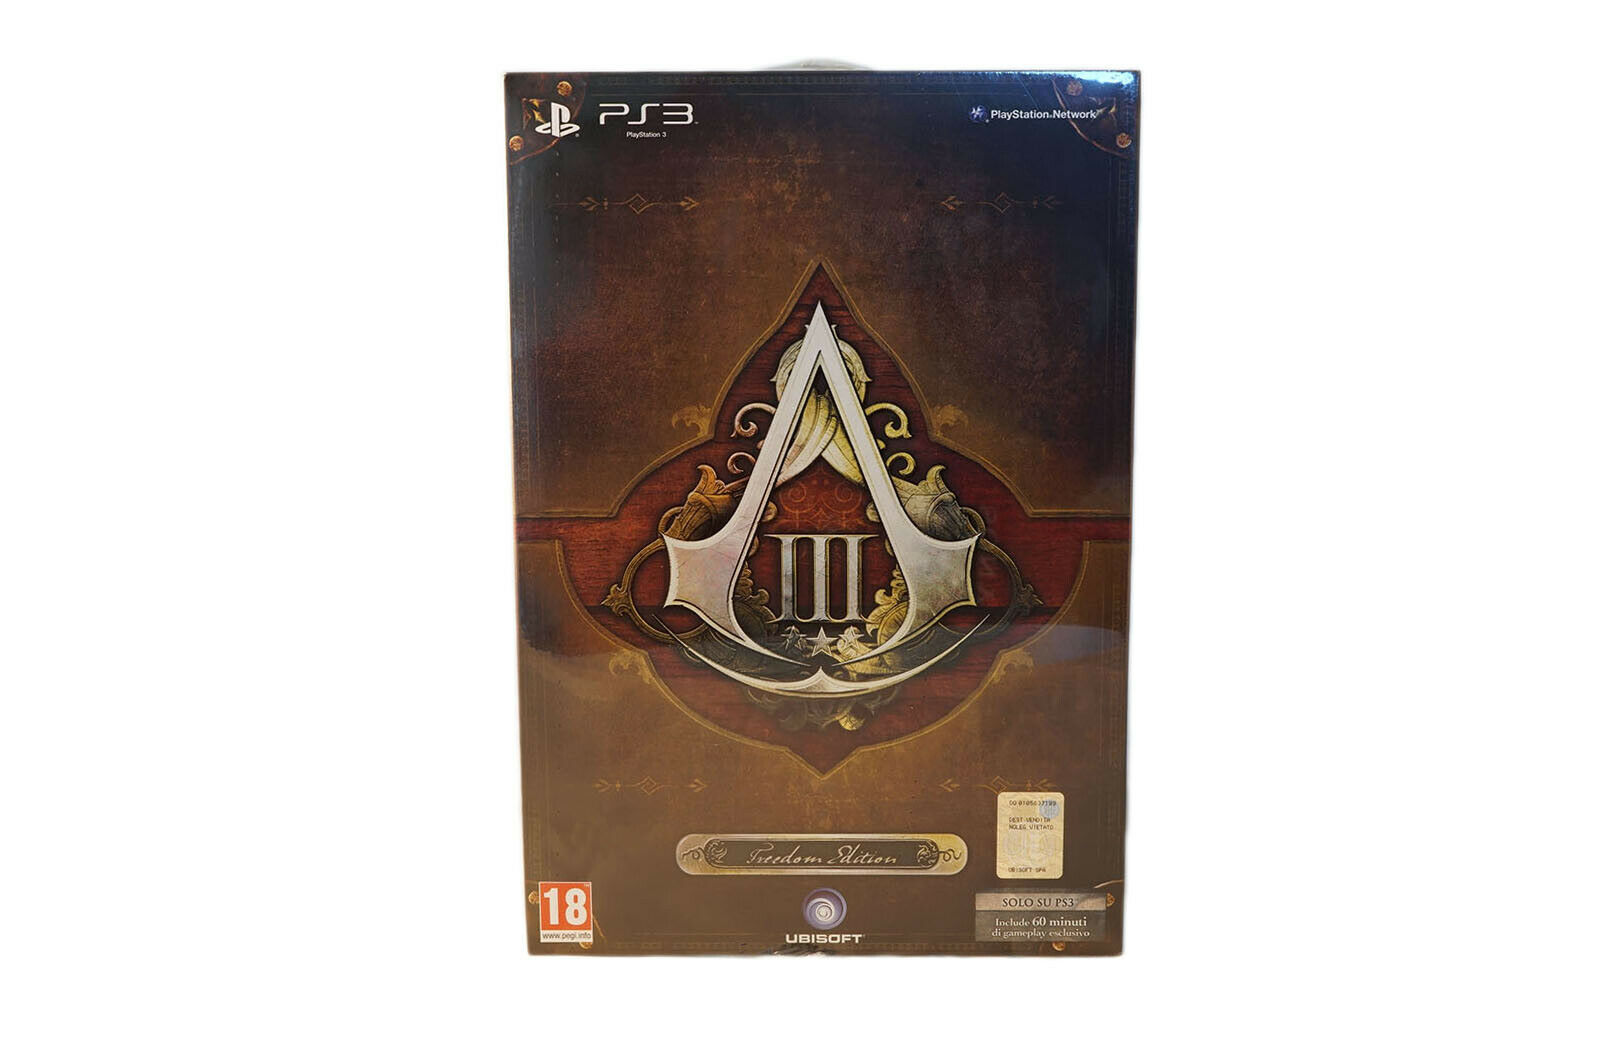 ASSASSIN'S CREED III 3 gratuitodom Collector's edizione PS3. NUOVO NUOVO NUOVO  fb6030